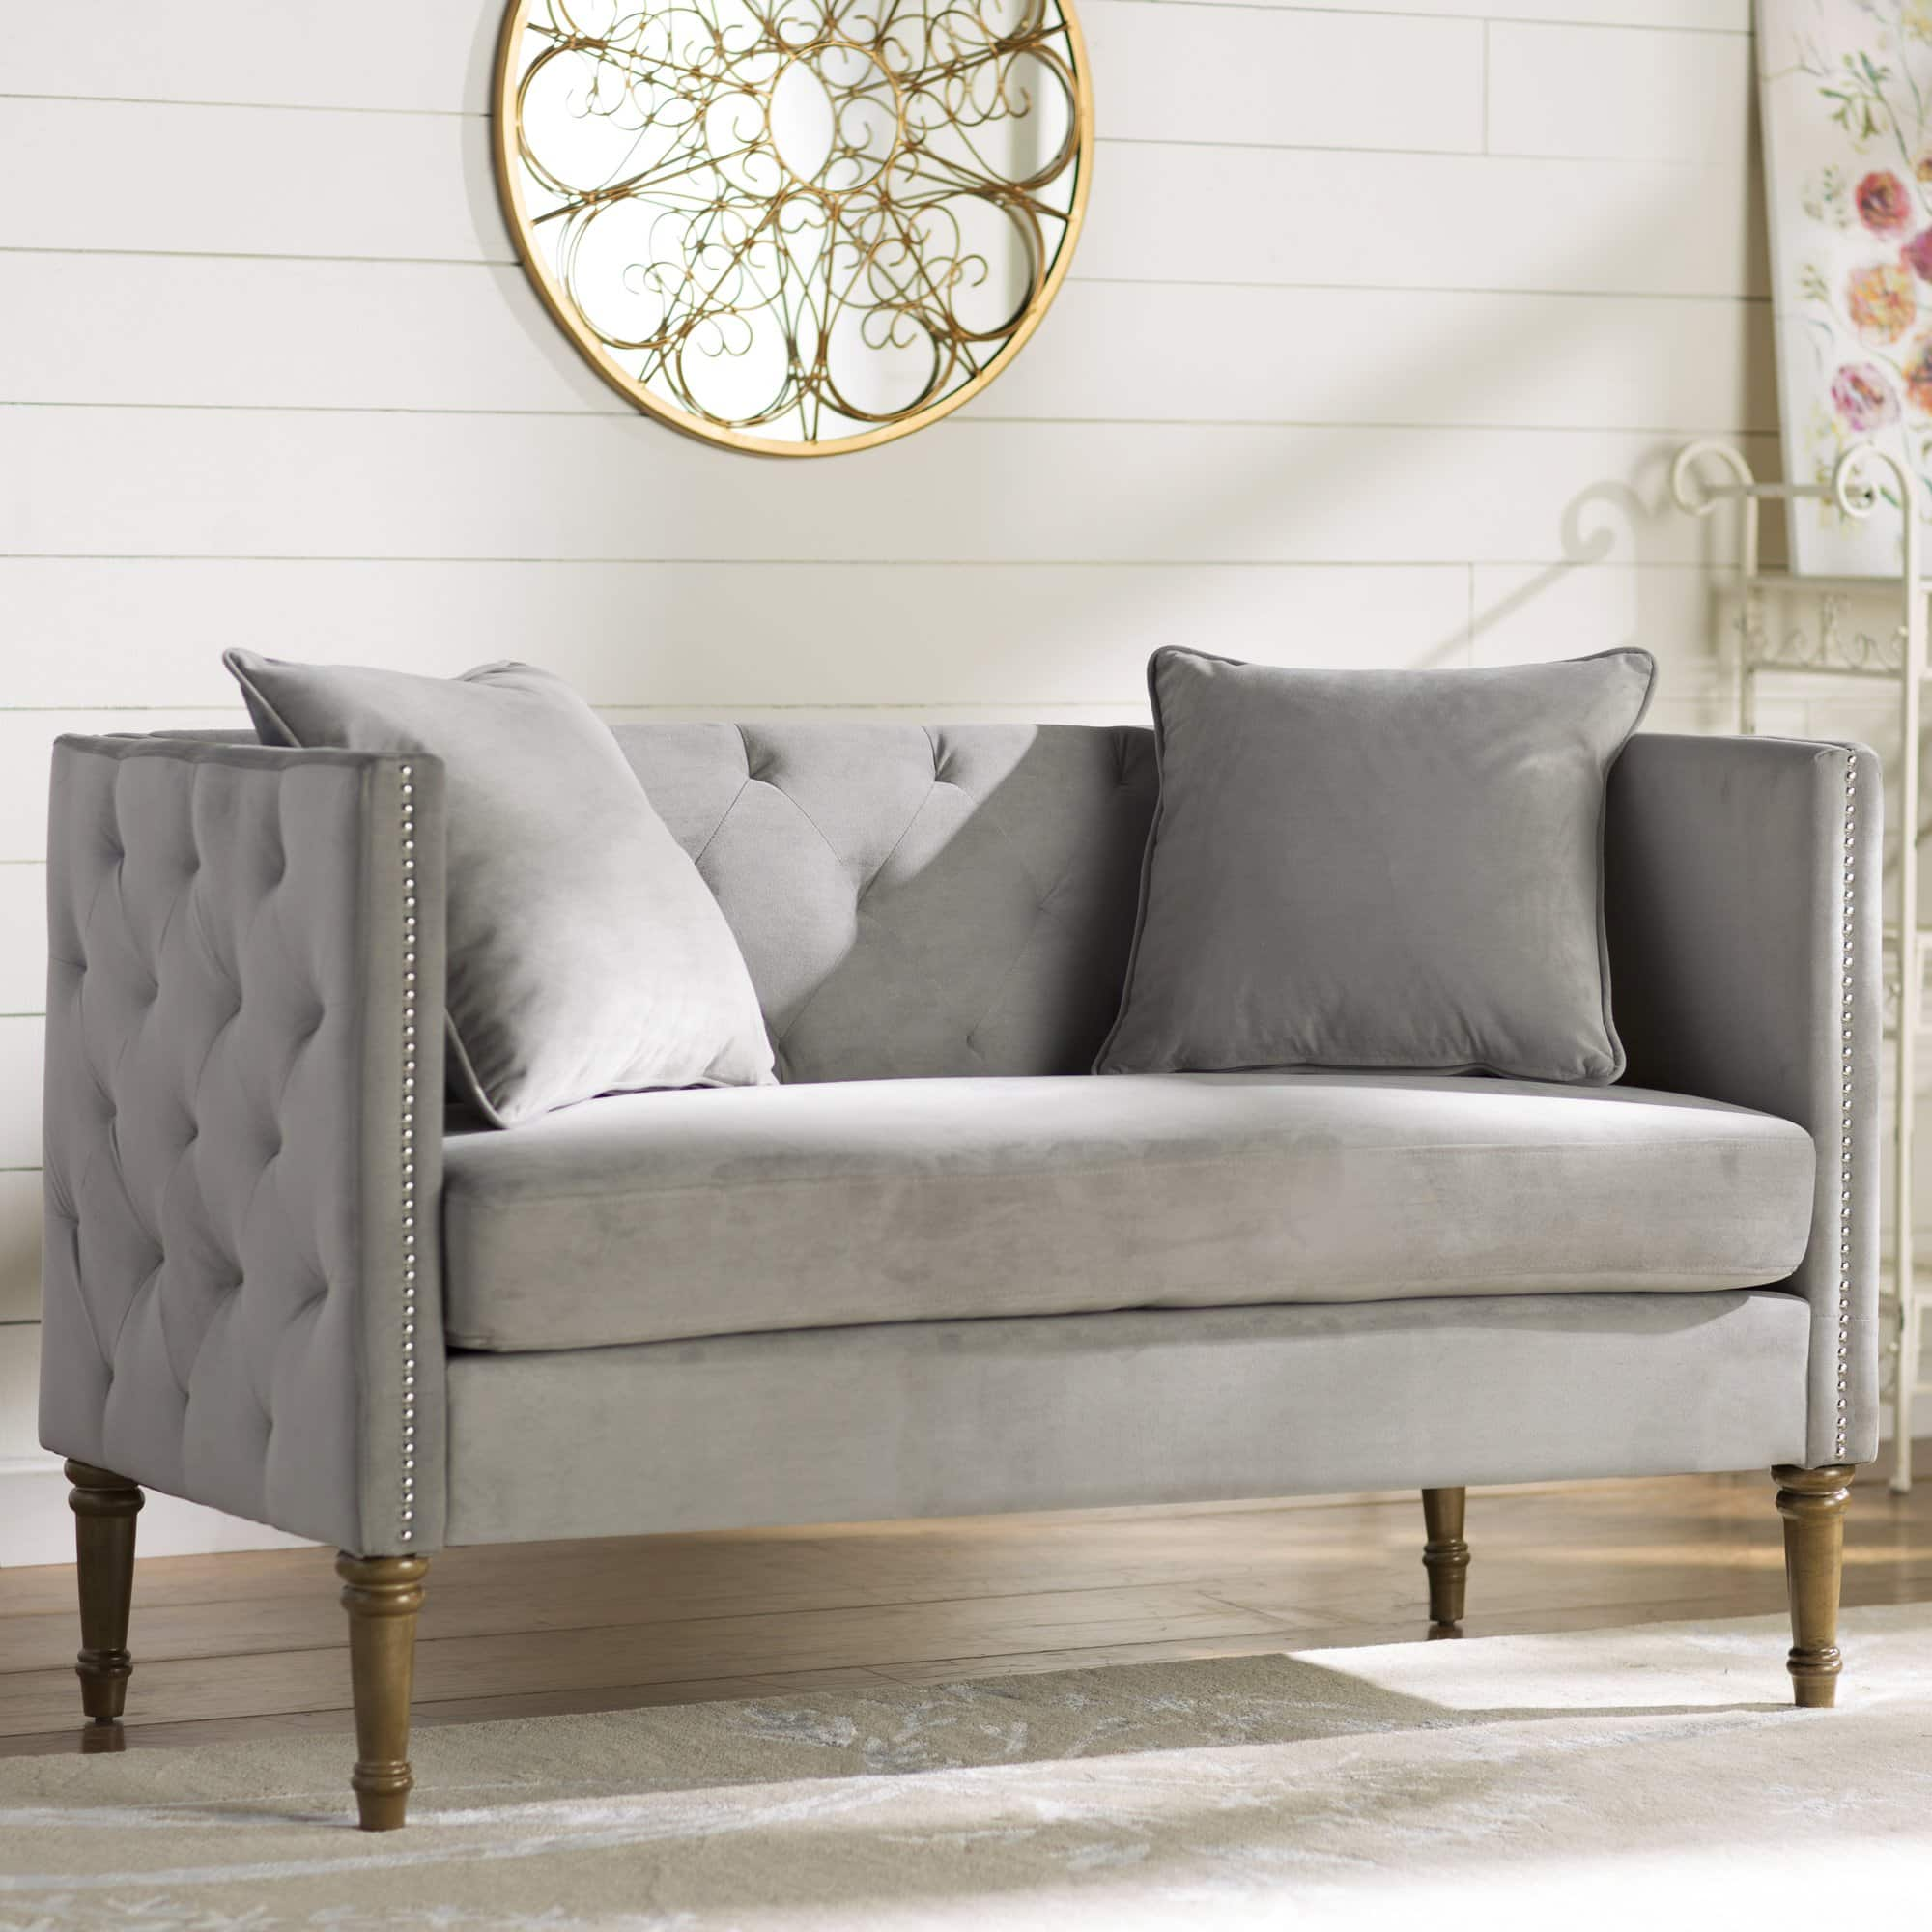 living room settee benches contemporary wall sconces for shopping guide where to find an affordable french bench